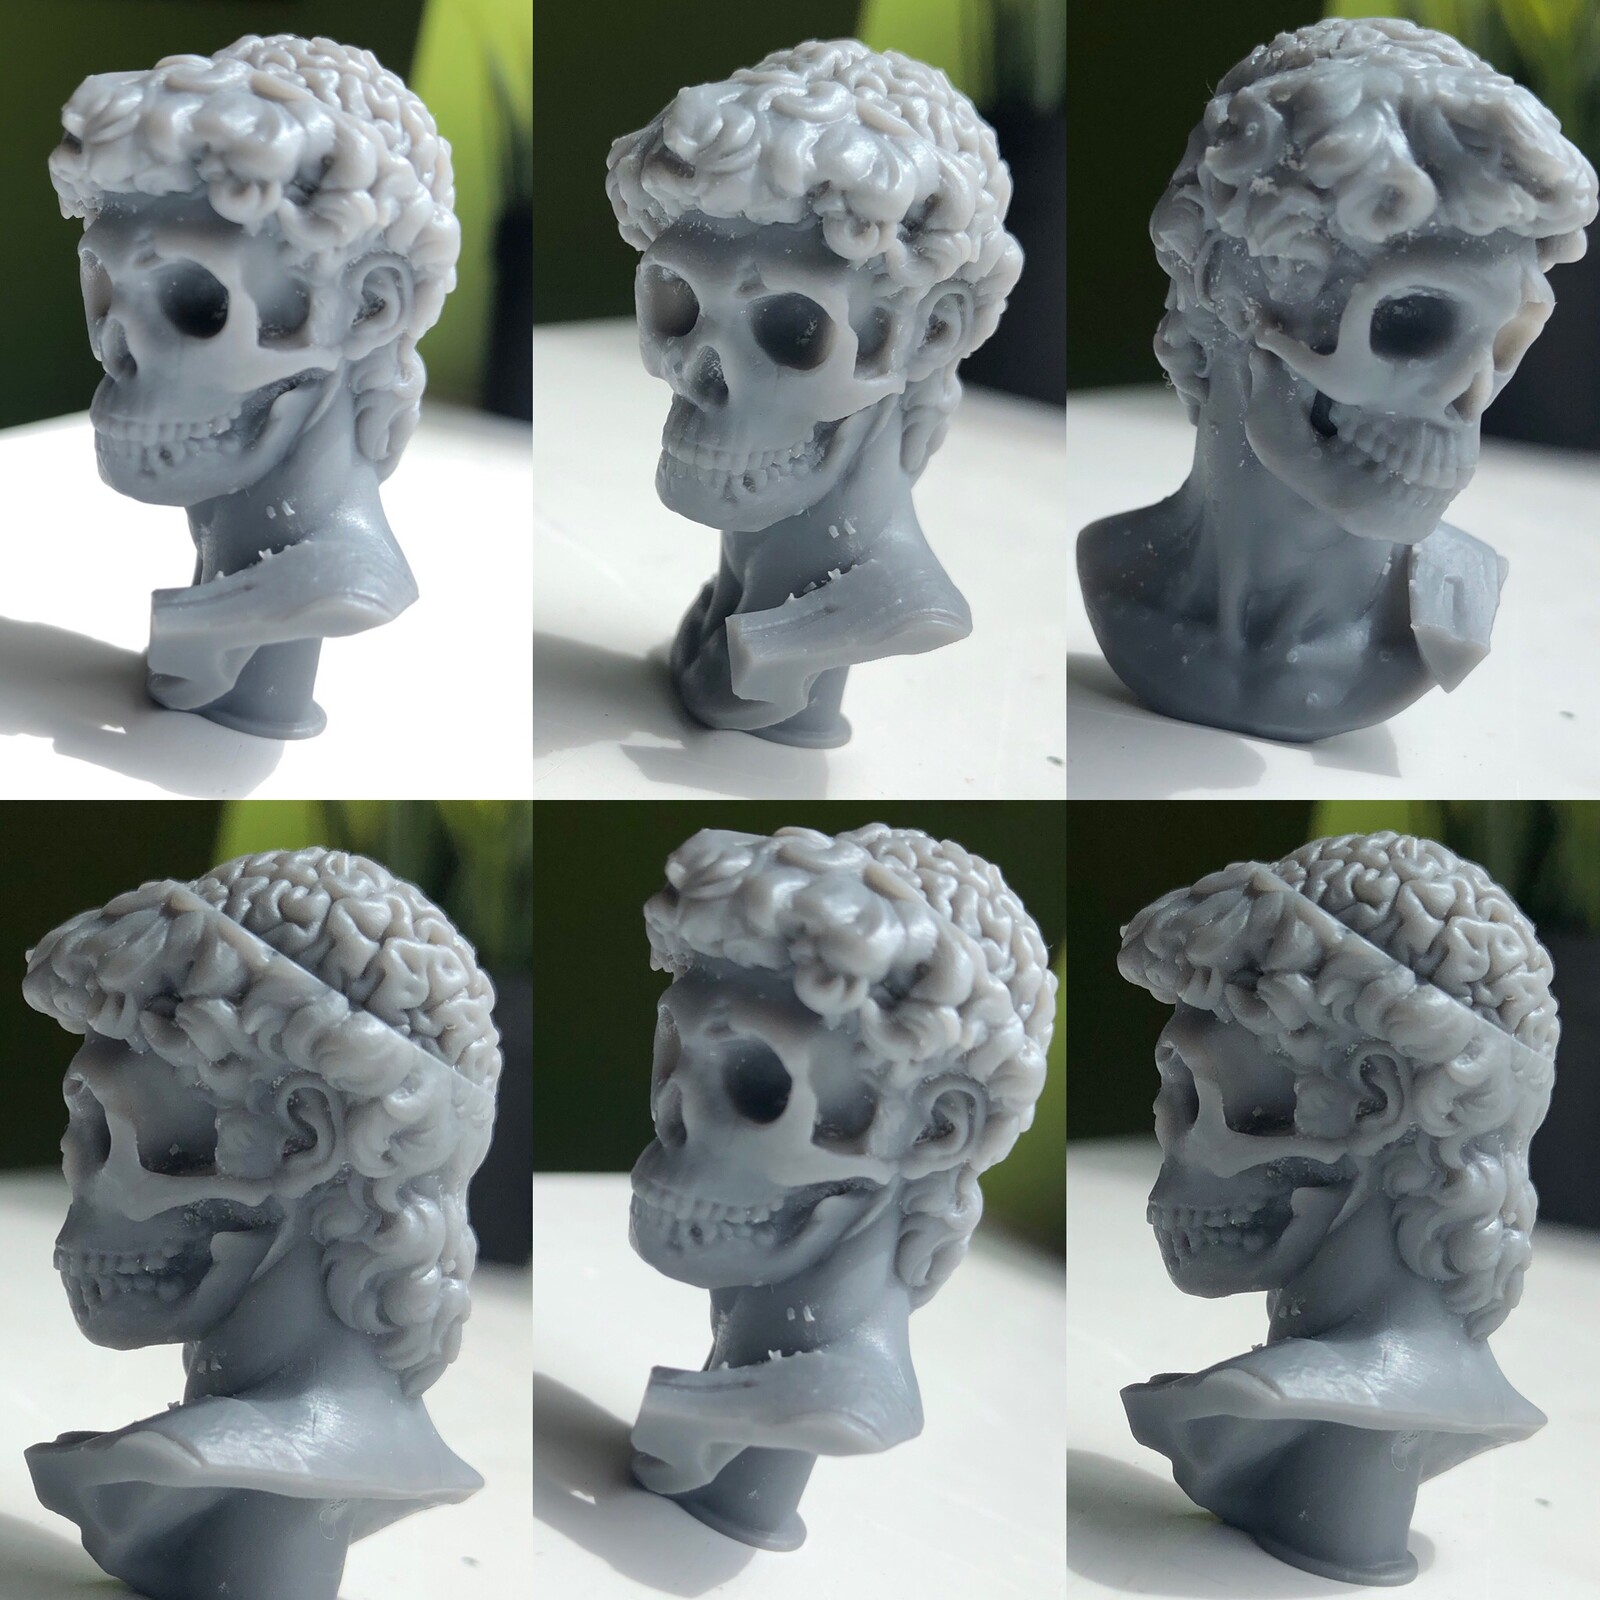 3d print of David's michelangelo bust revisited by myself